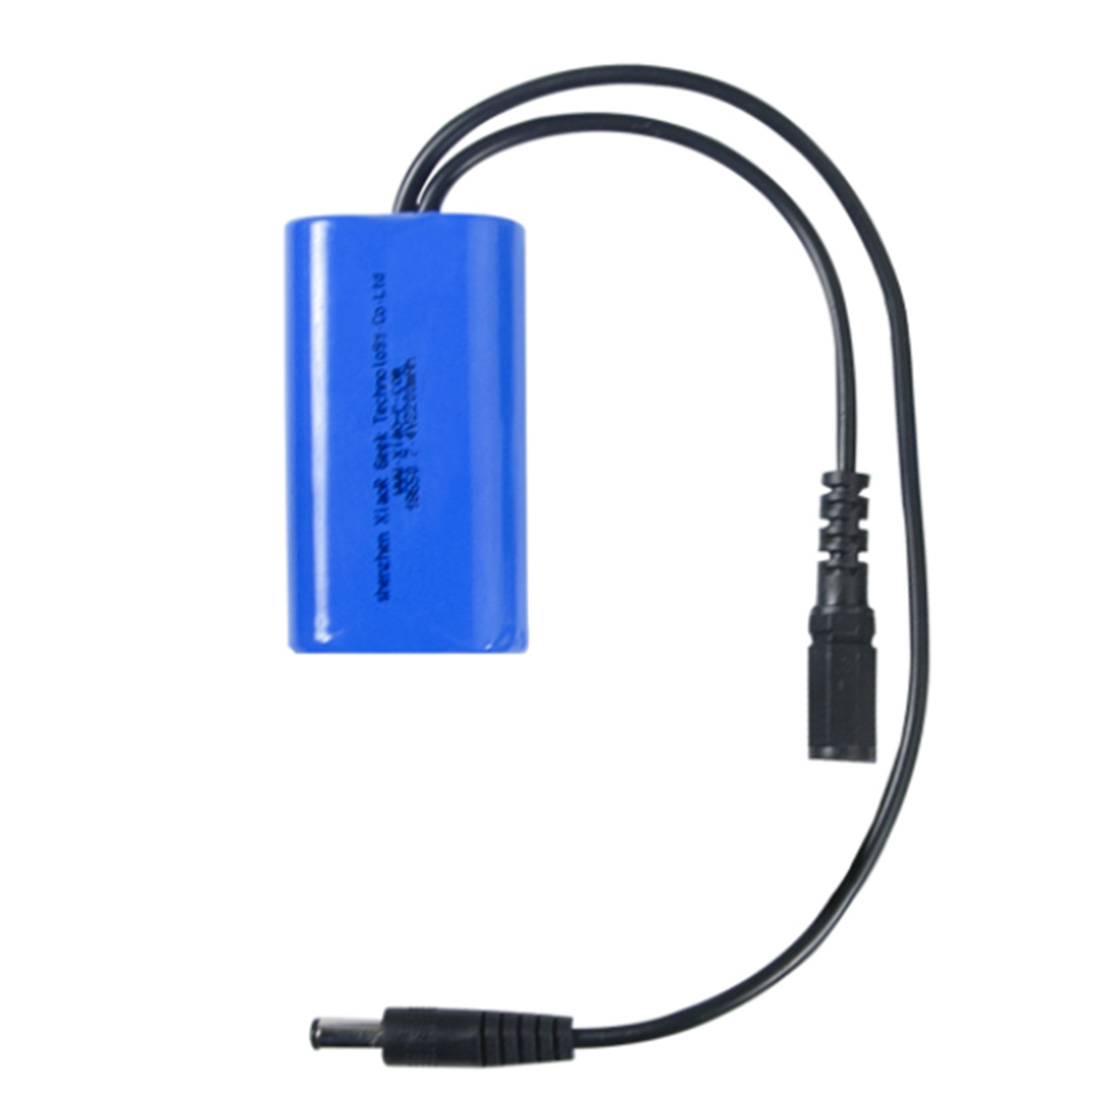 New Hot 1 Pcs 2200mAh 7.4V Lithium Battery Pack For Several Programming Vehicles